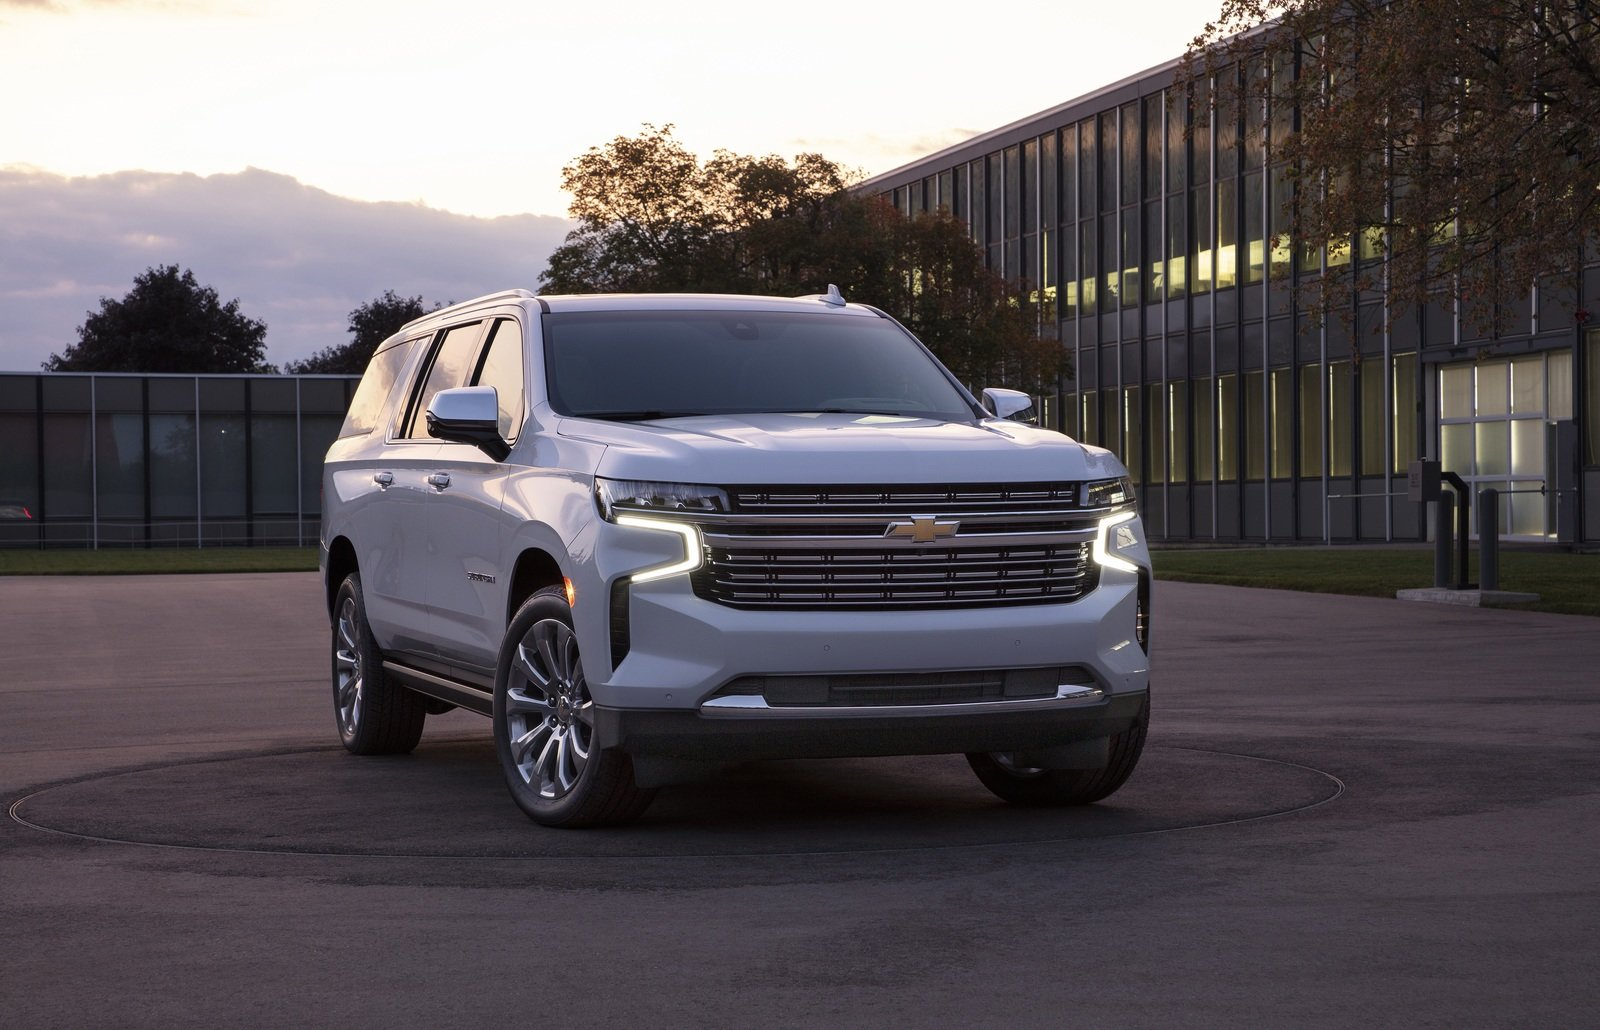 2021 Chevy Suburban 2021 Chevy Traverse High Country Used, Reviews, Price